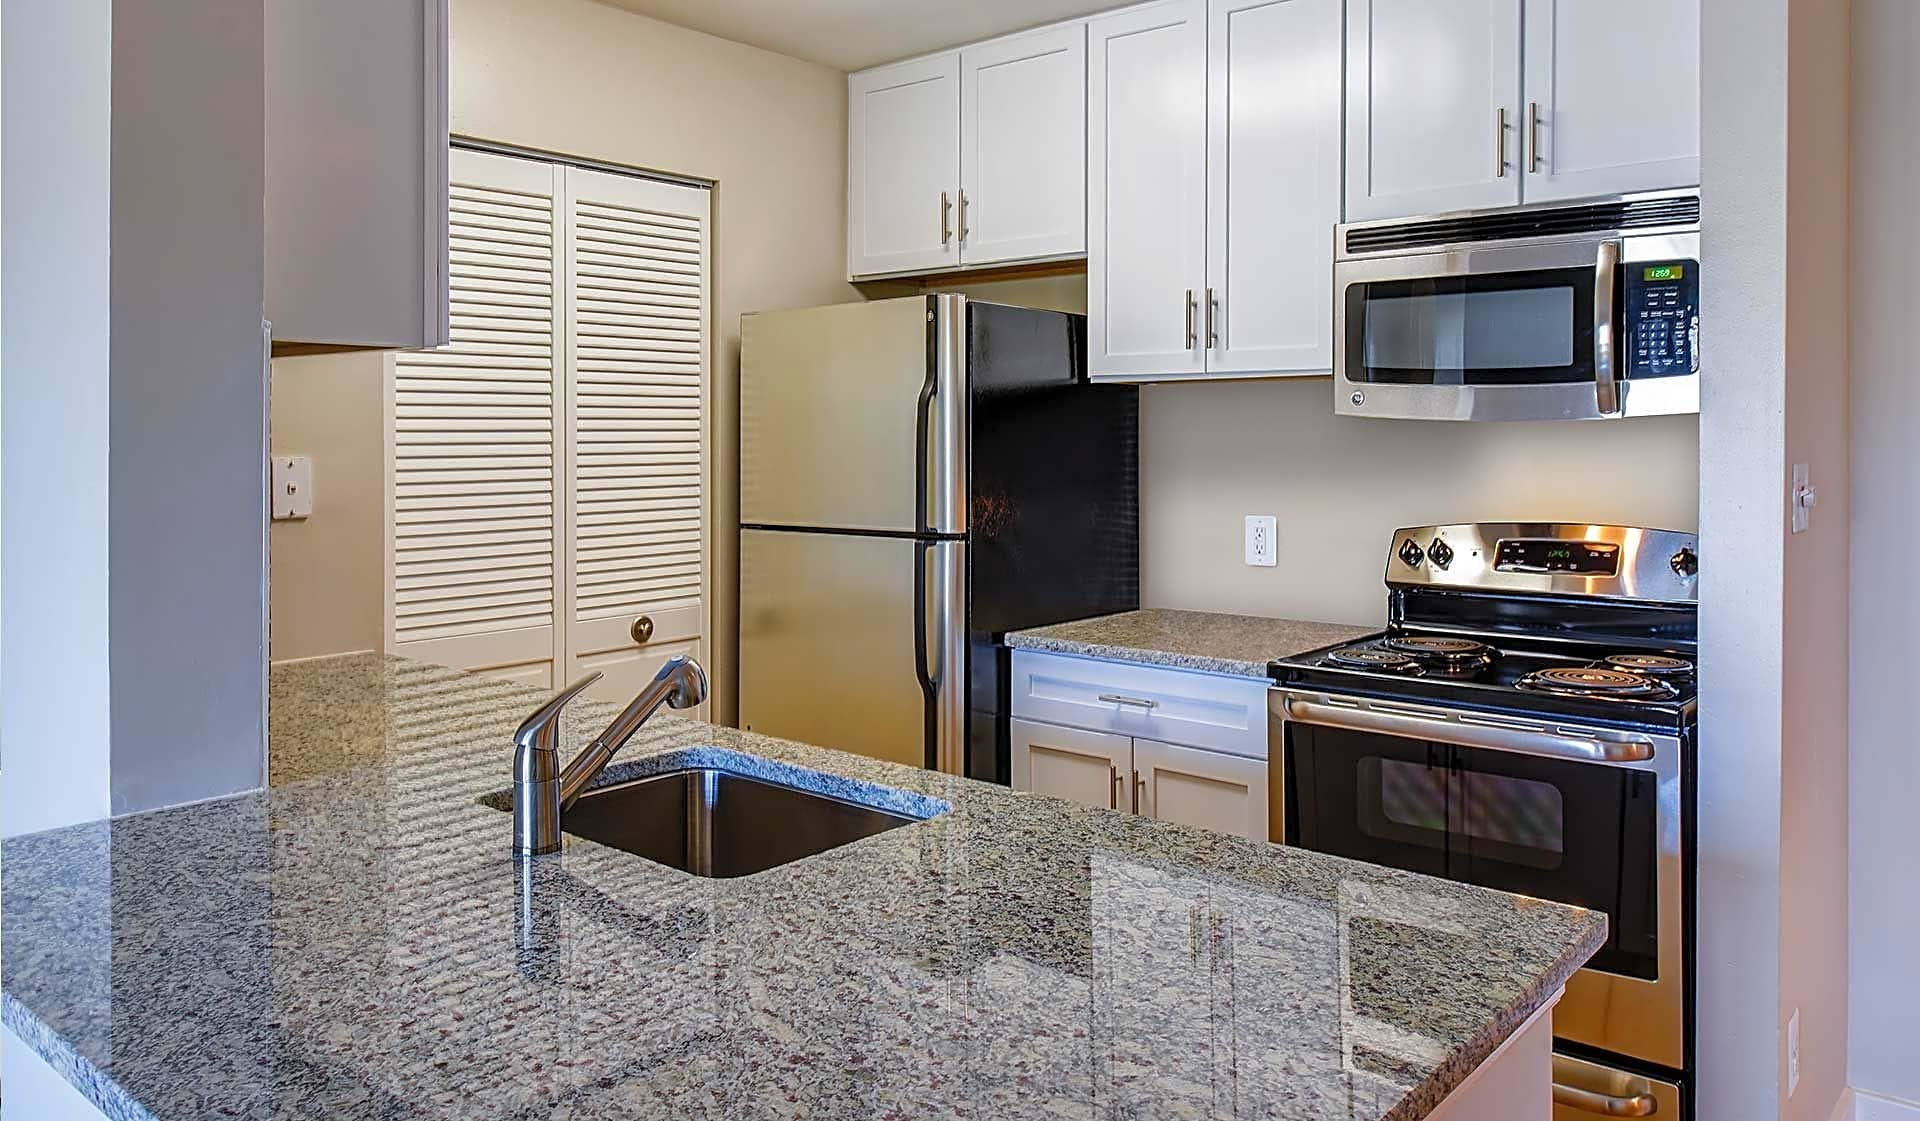 Shenandoah crossing apartment homes fairfax va 22033 for Academy de cuisine bethesda md